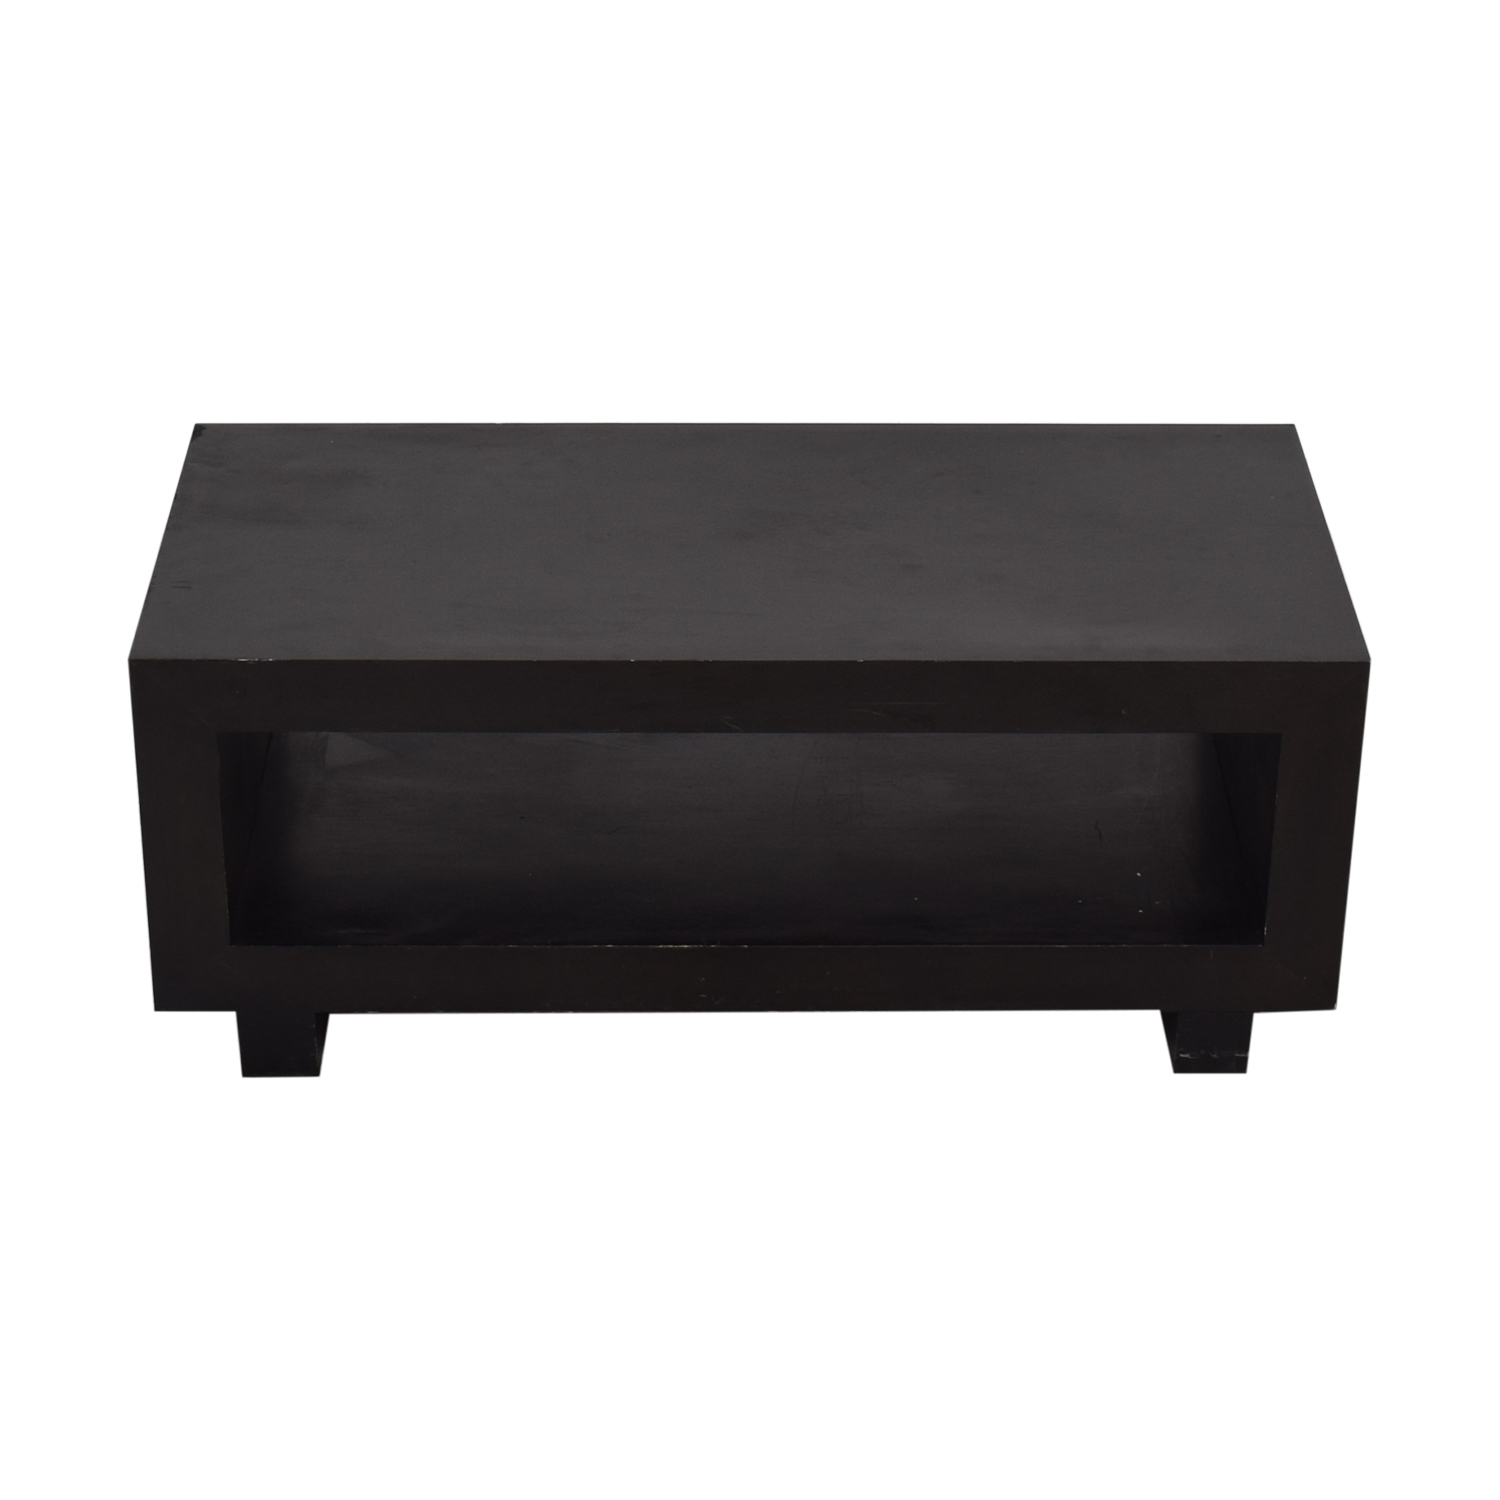 West Elm West Elm Media Console used